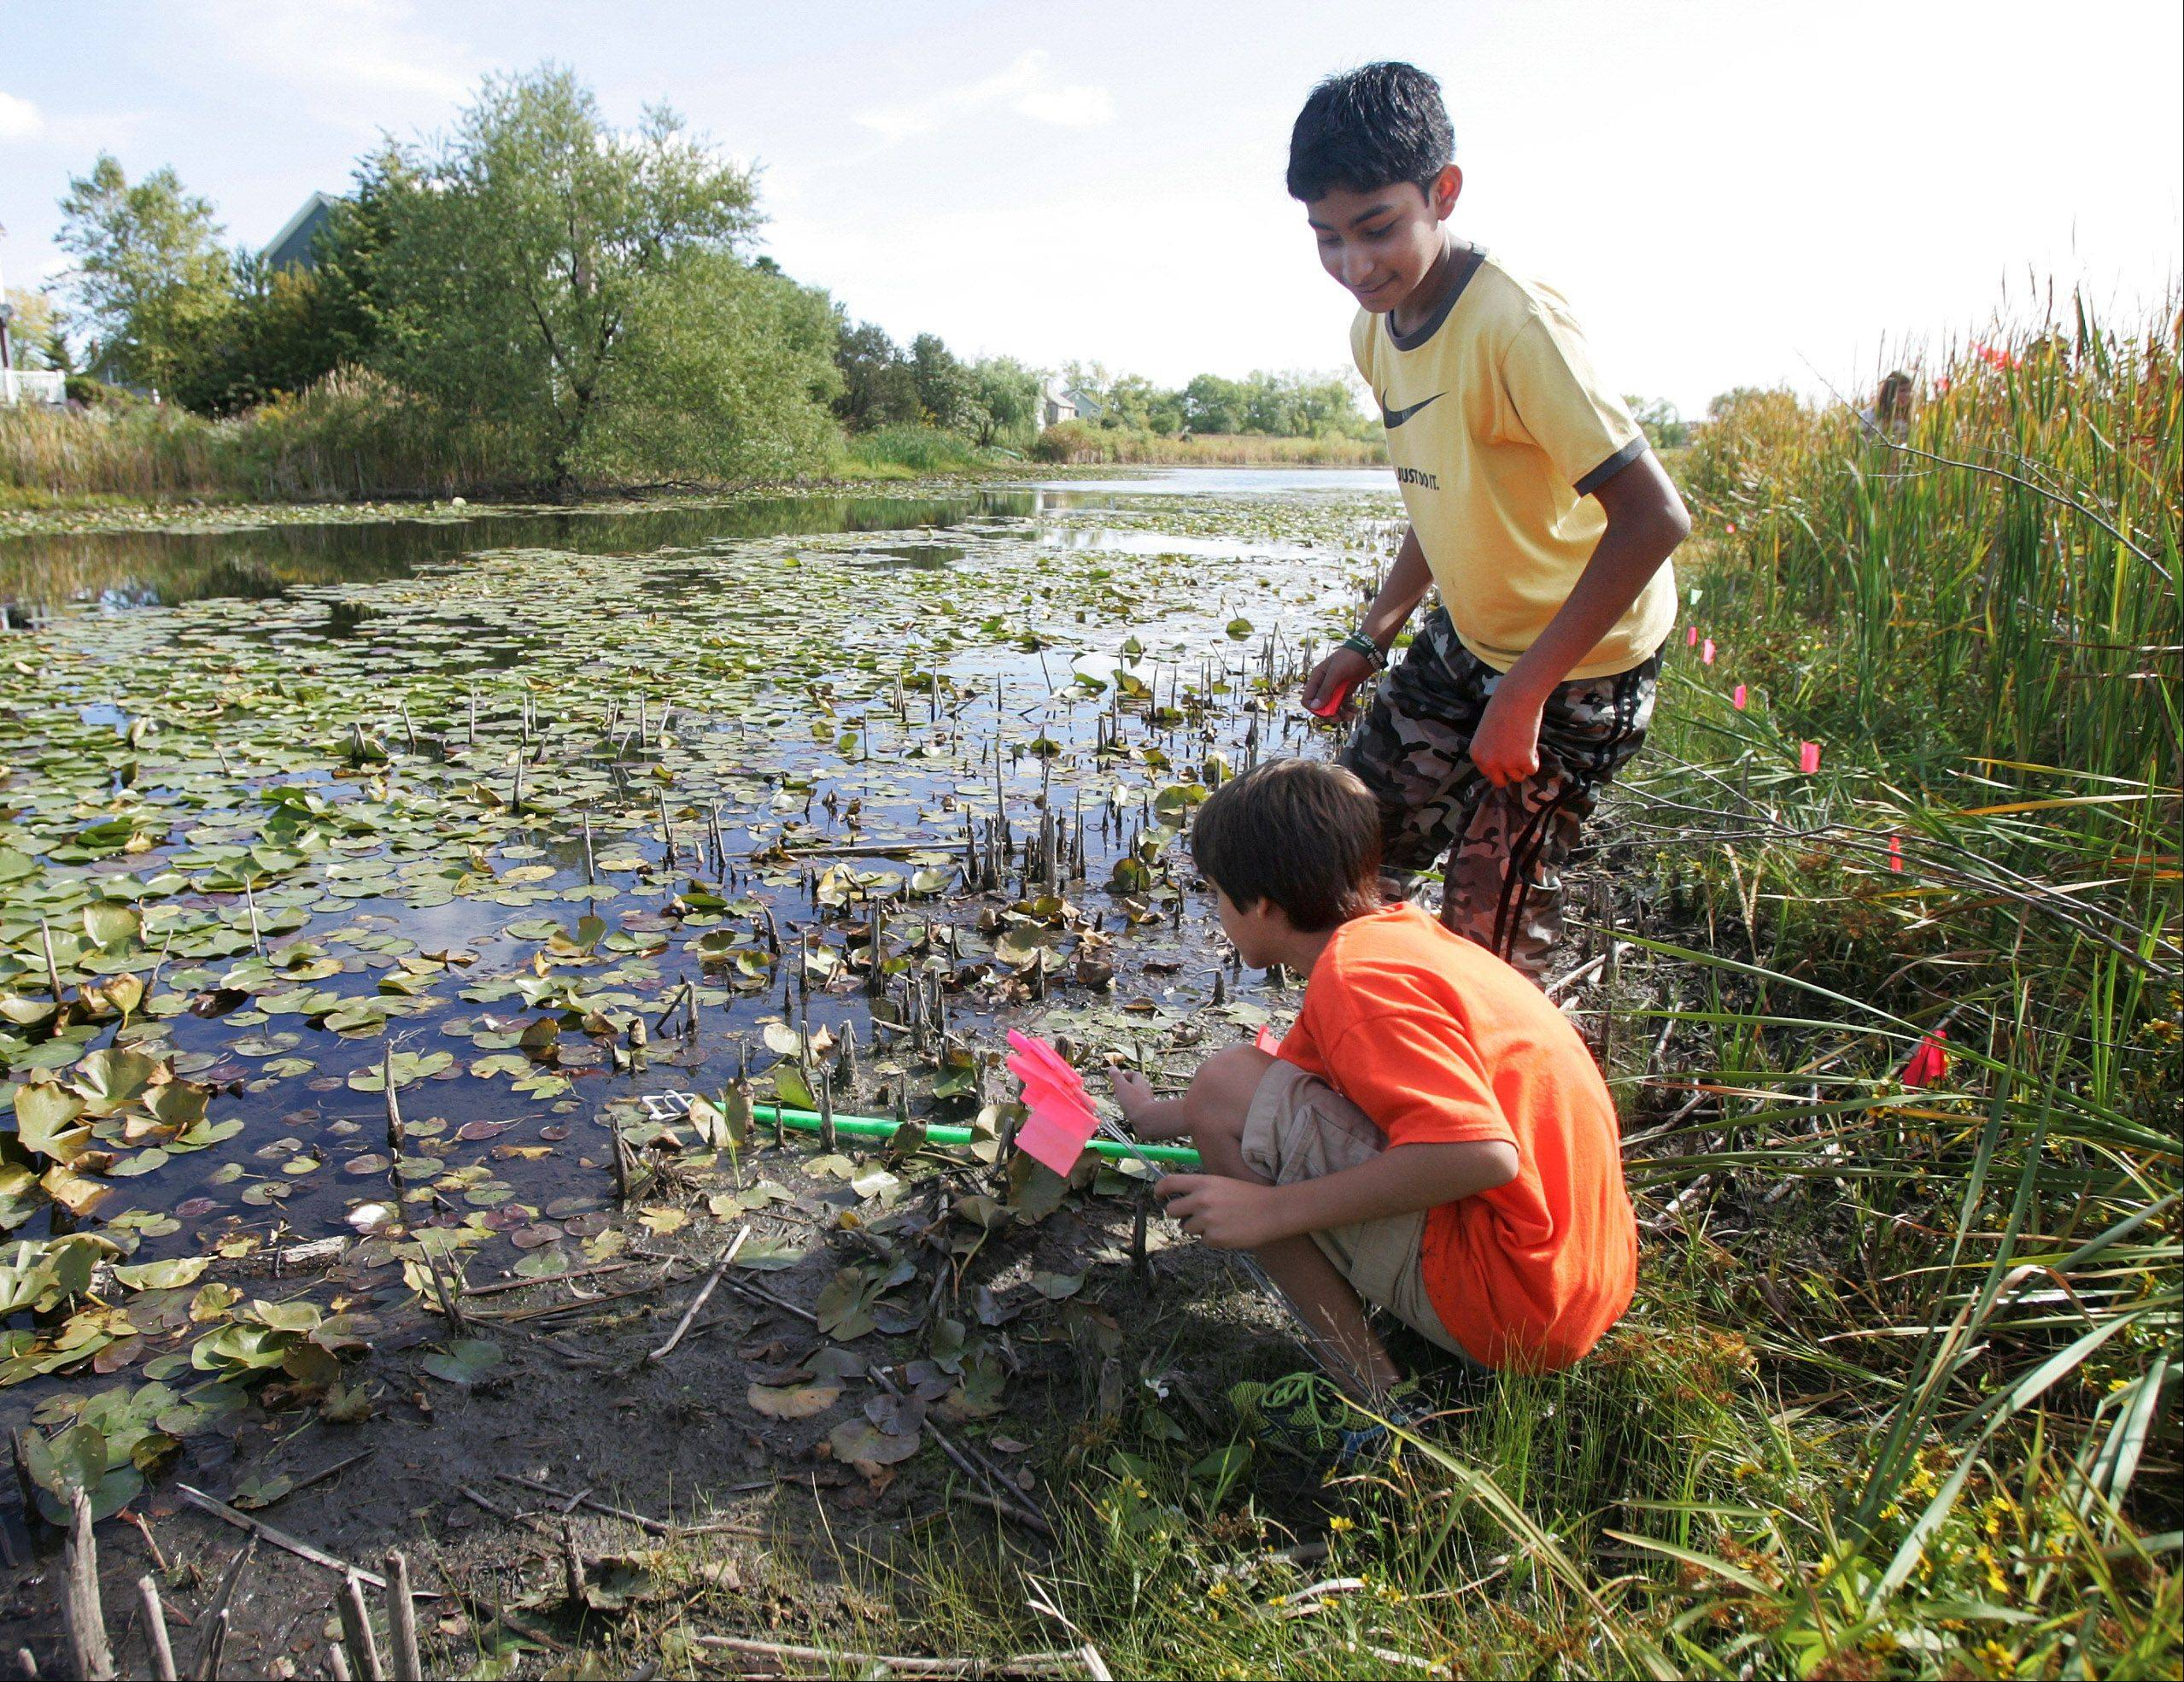 Gilbert R. Boucher II/gboucher@dailyherald.comSeventh grade students Brett Lay, below, and Rayyan Talha place markers for the water line of a pond as the class from Prairie Crossing Charter School survey a sanctuary pond Wednesday in Grayslake. The project was part of Geography Week at the school.